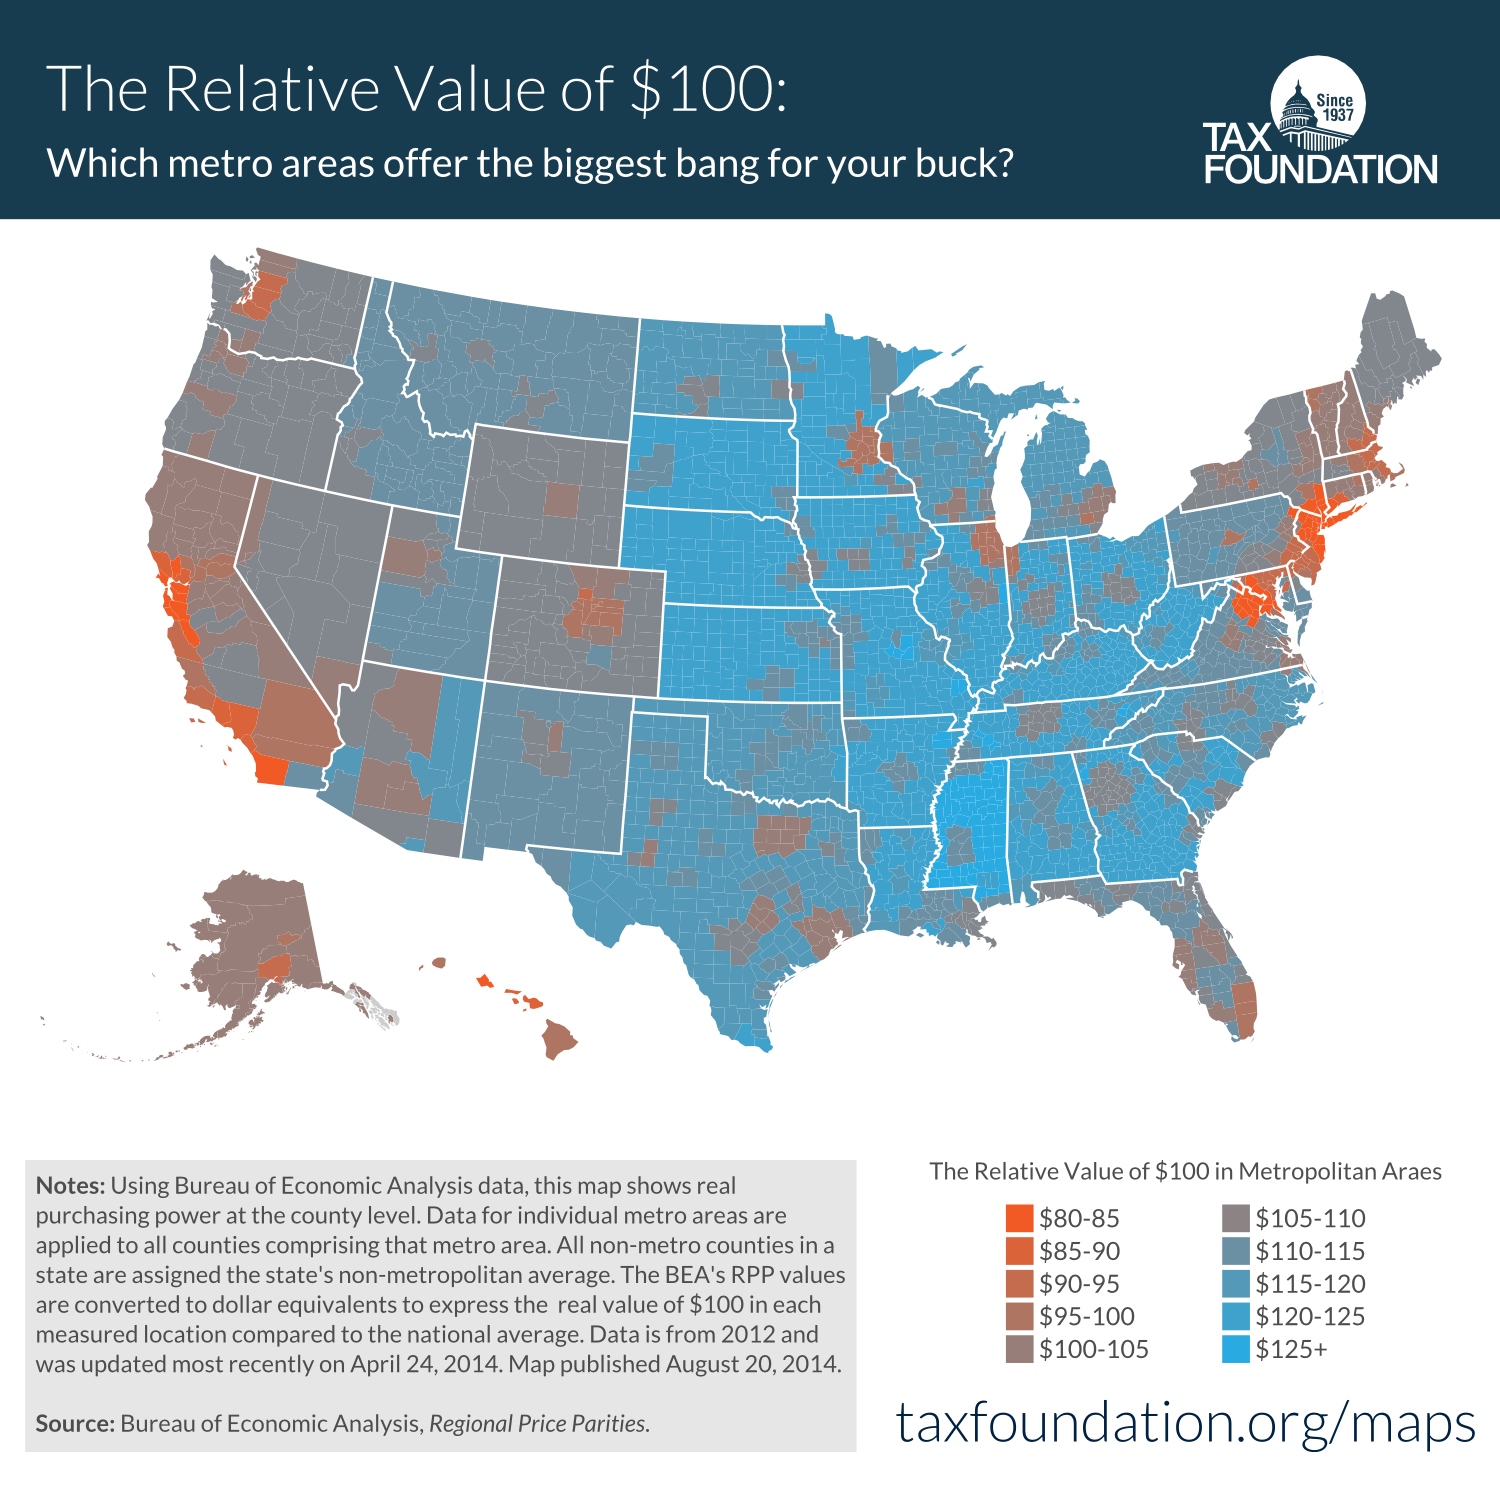 The Real Value Of 100 In Metropolitan Areas